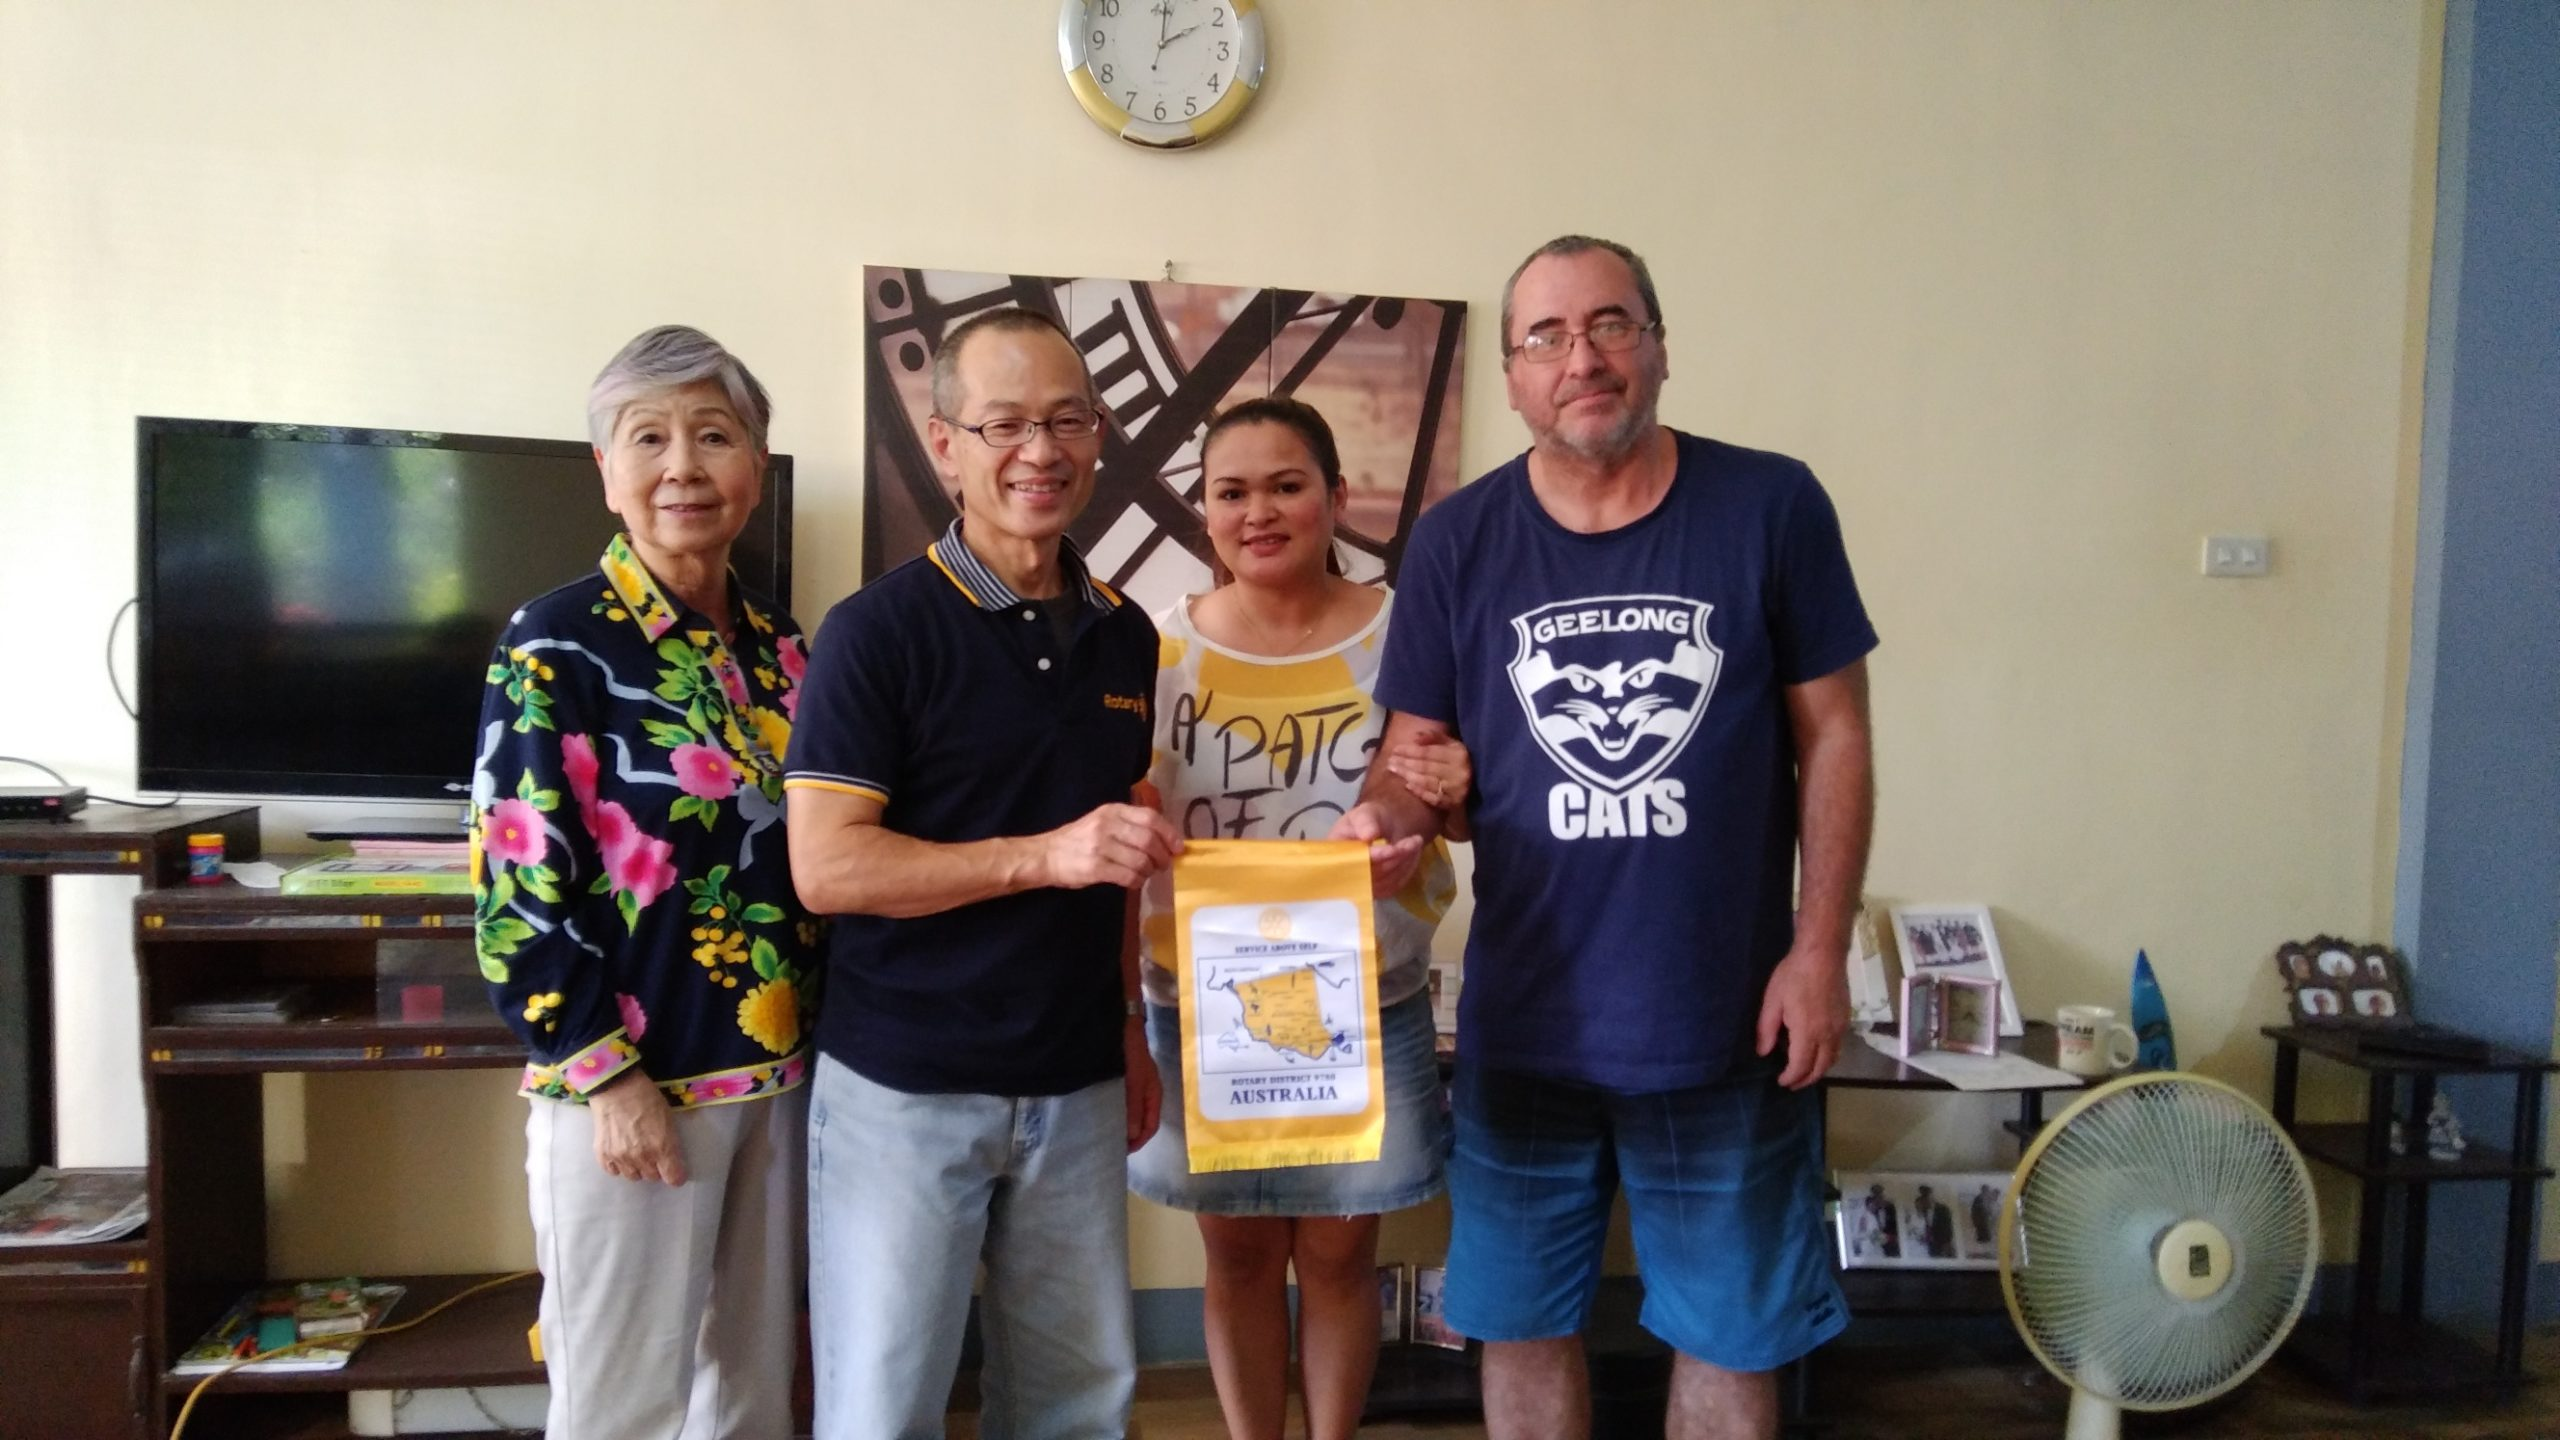 Donation from Rotary Club of Geelong Central, Australia